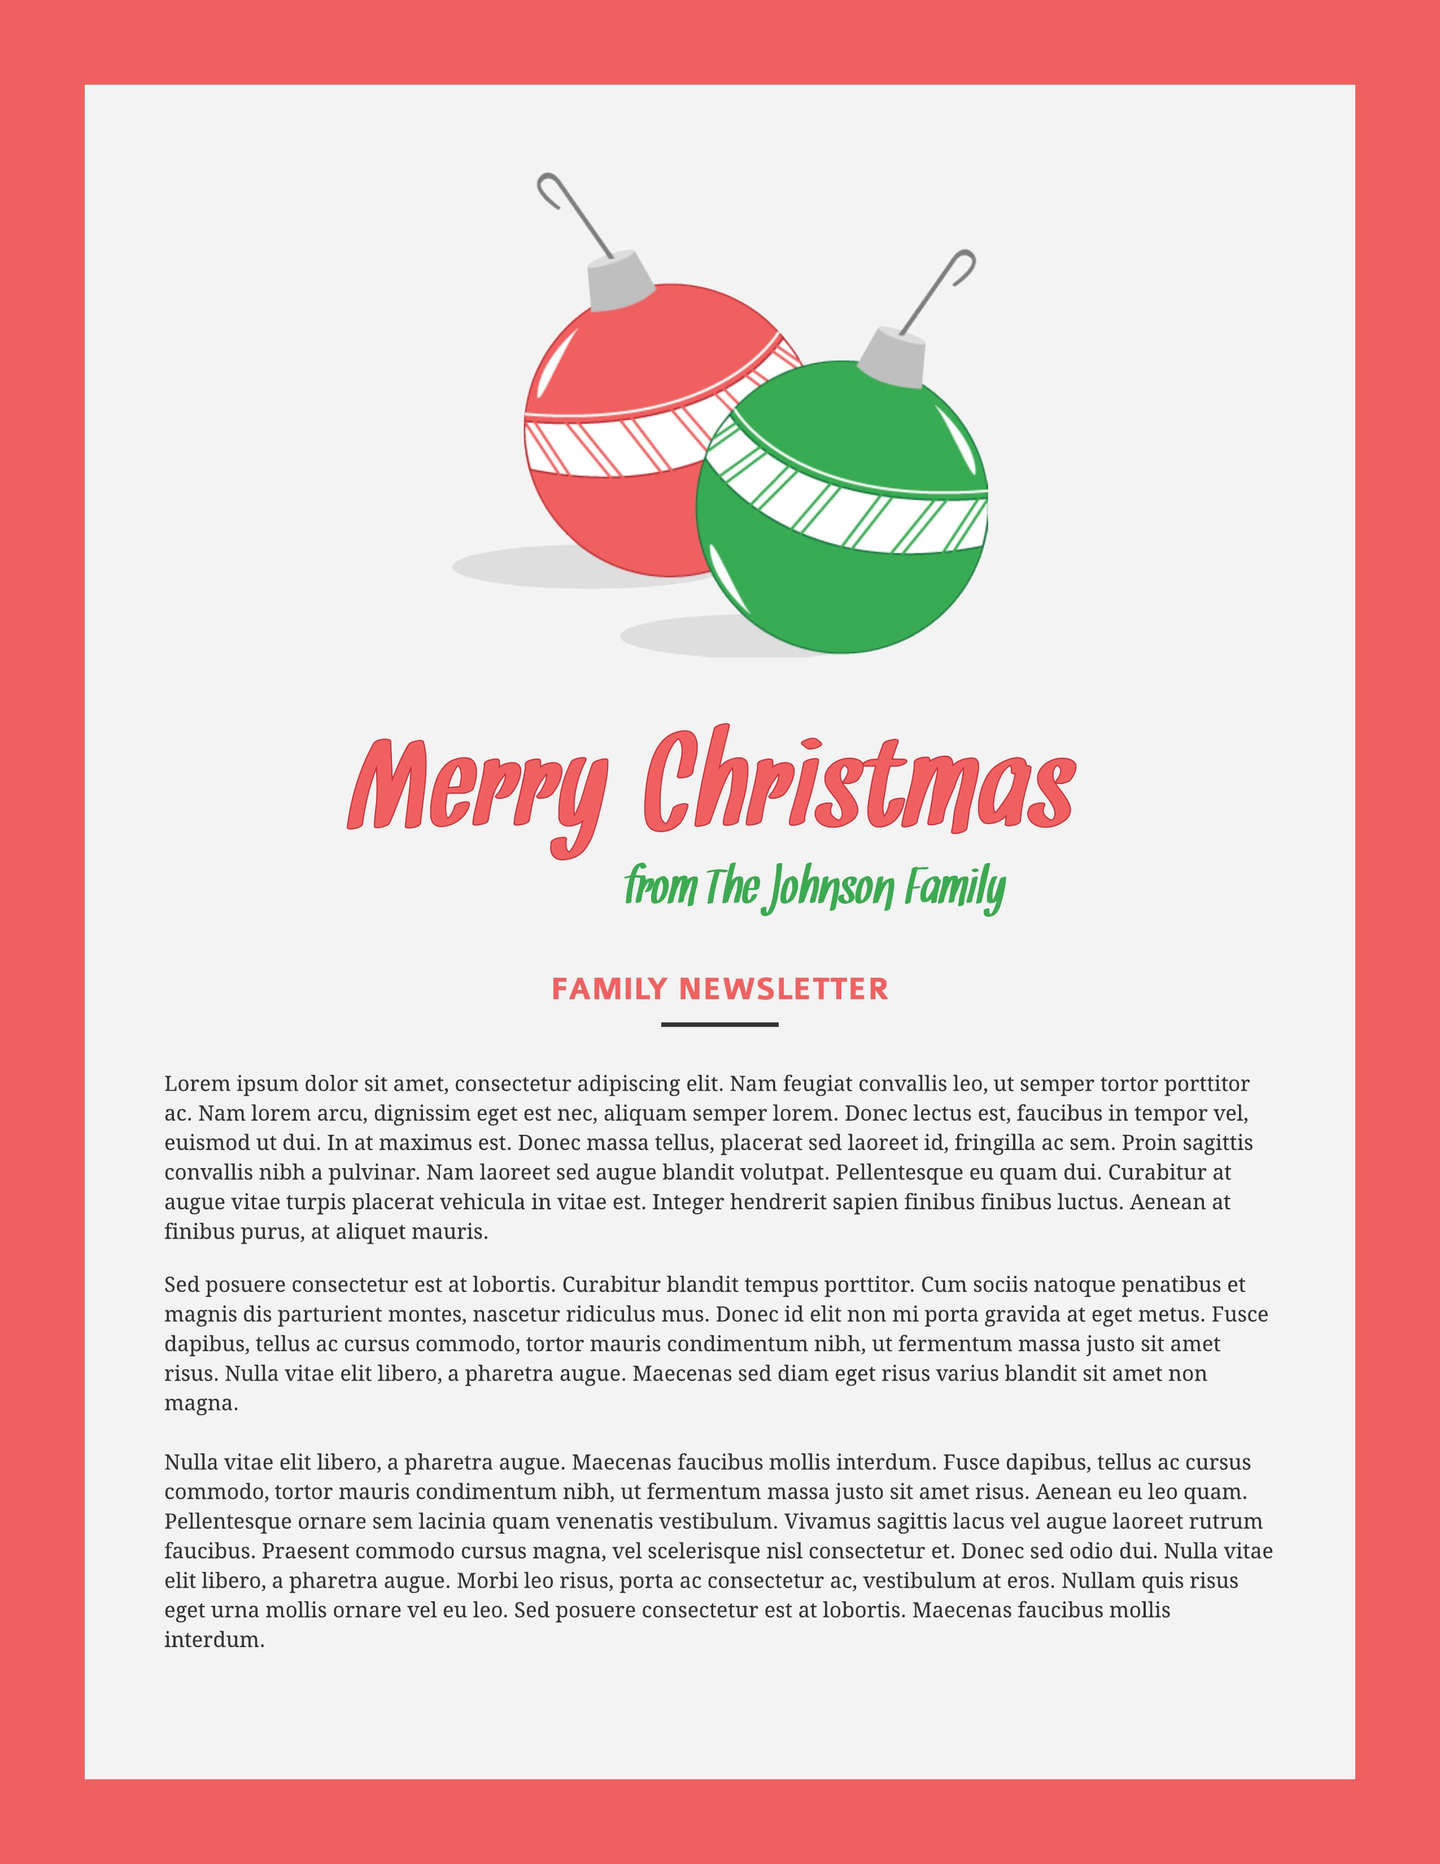 Holiday Christmas Newsletter Template